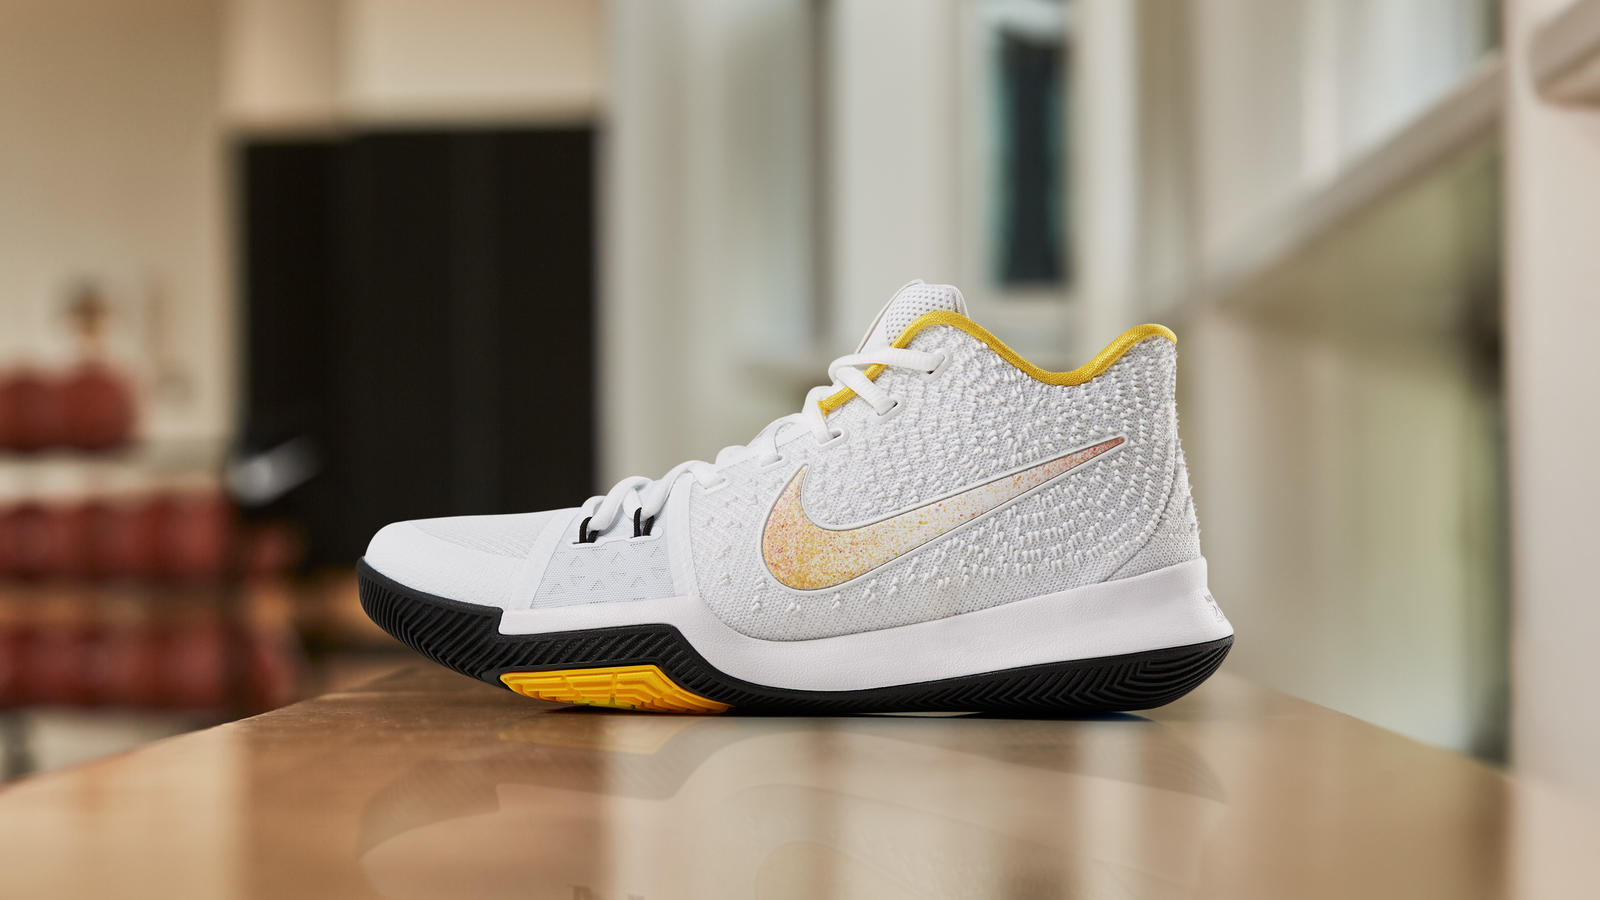 competitive price 2f806 70d85 KYRIE 3 N7 - Nike News